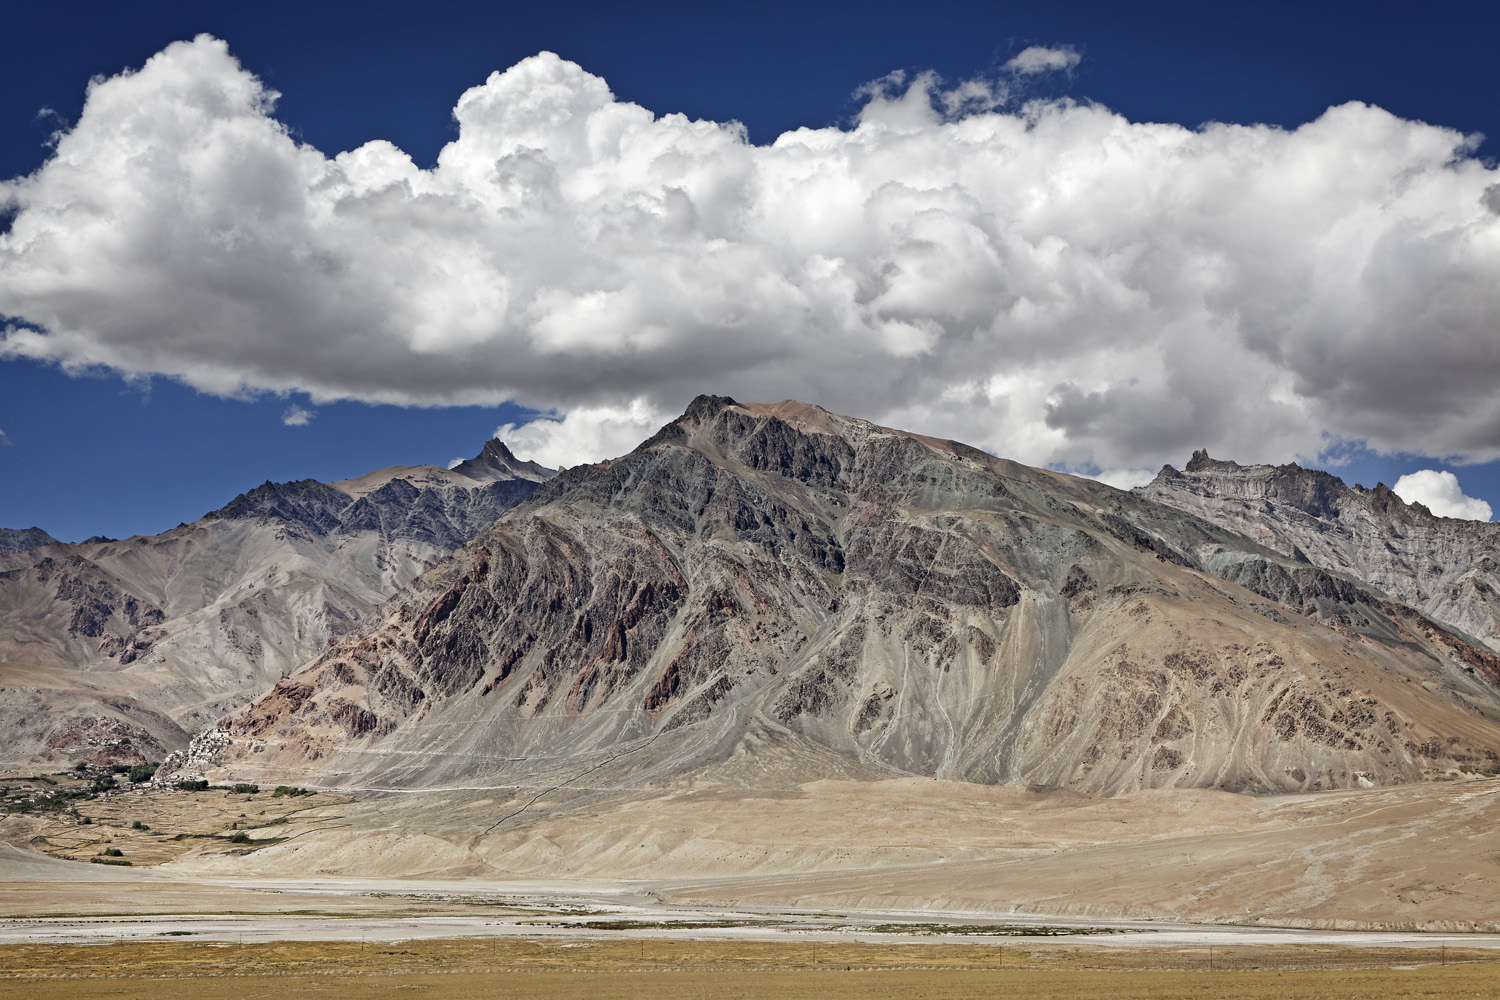 Karsha in the distance, Zanskar, India